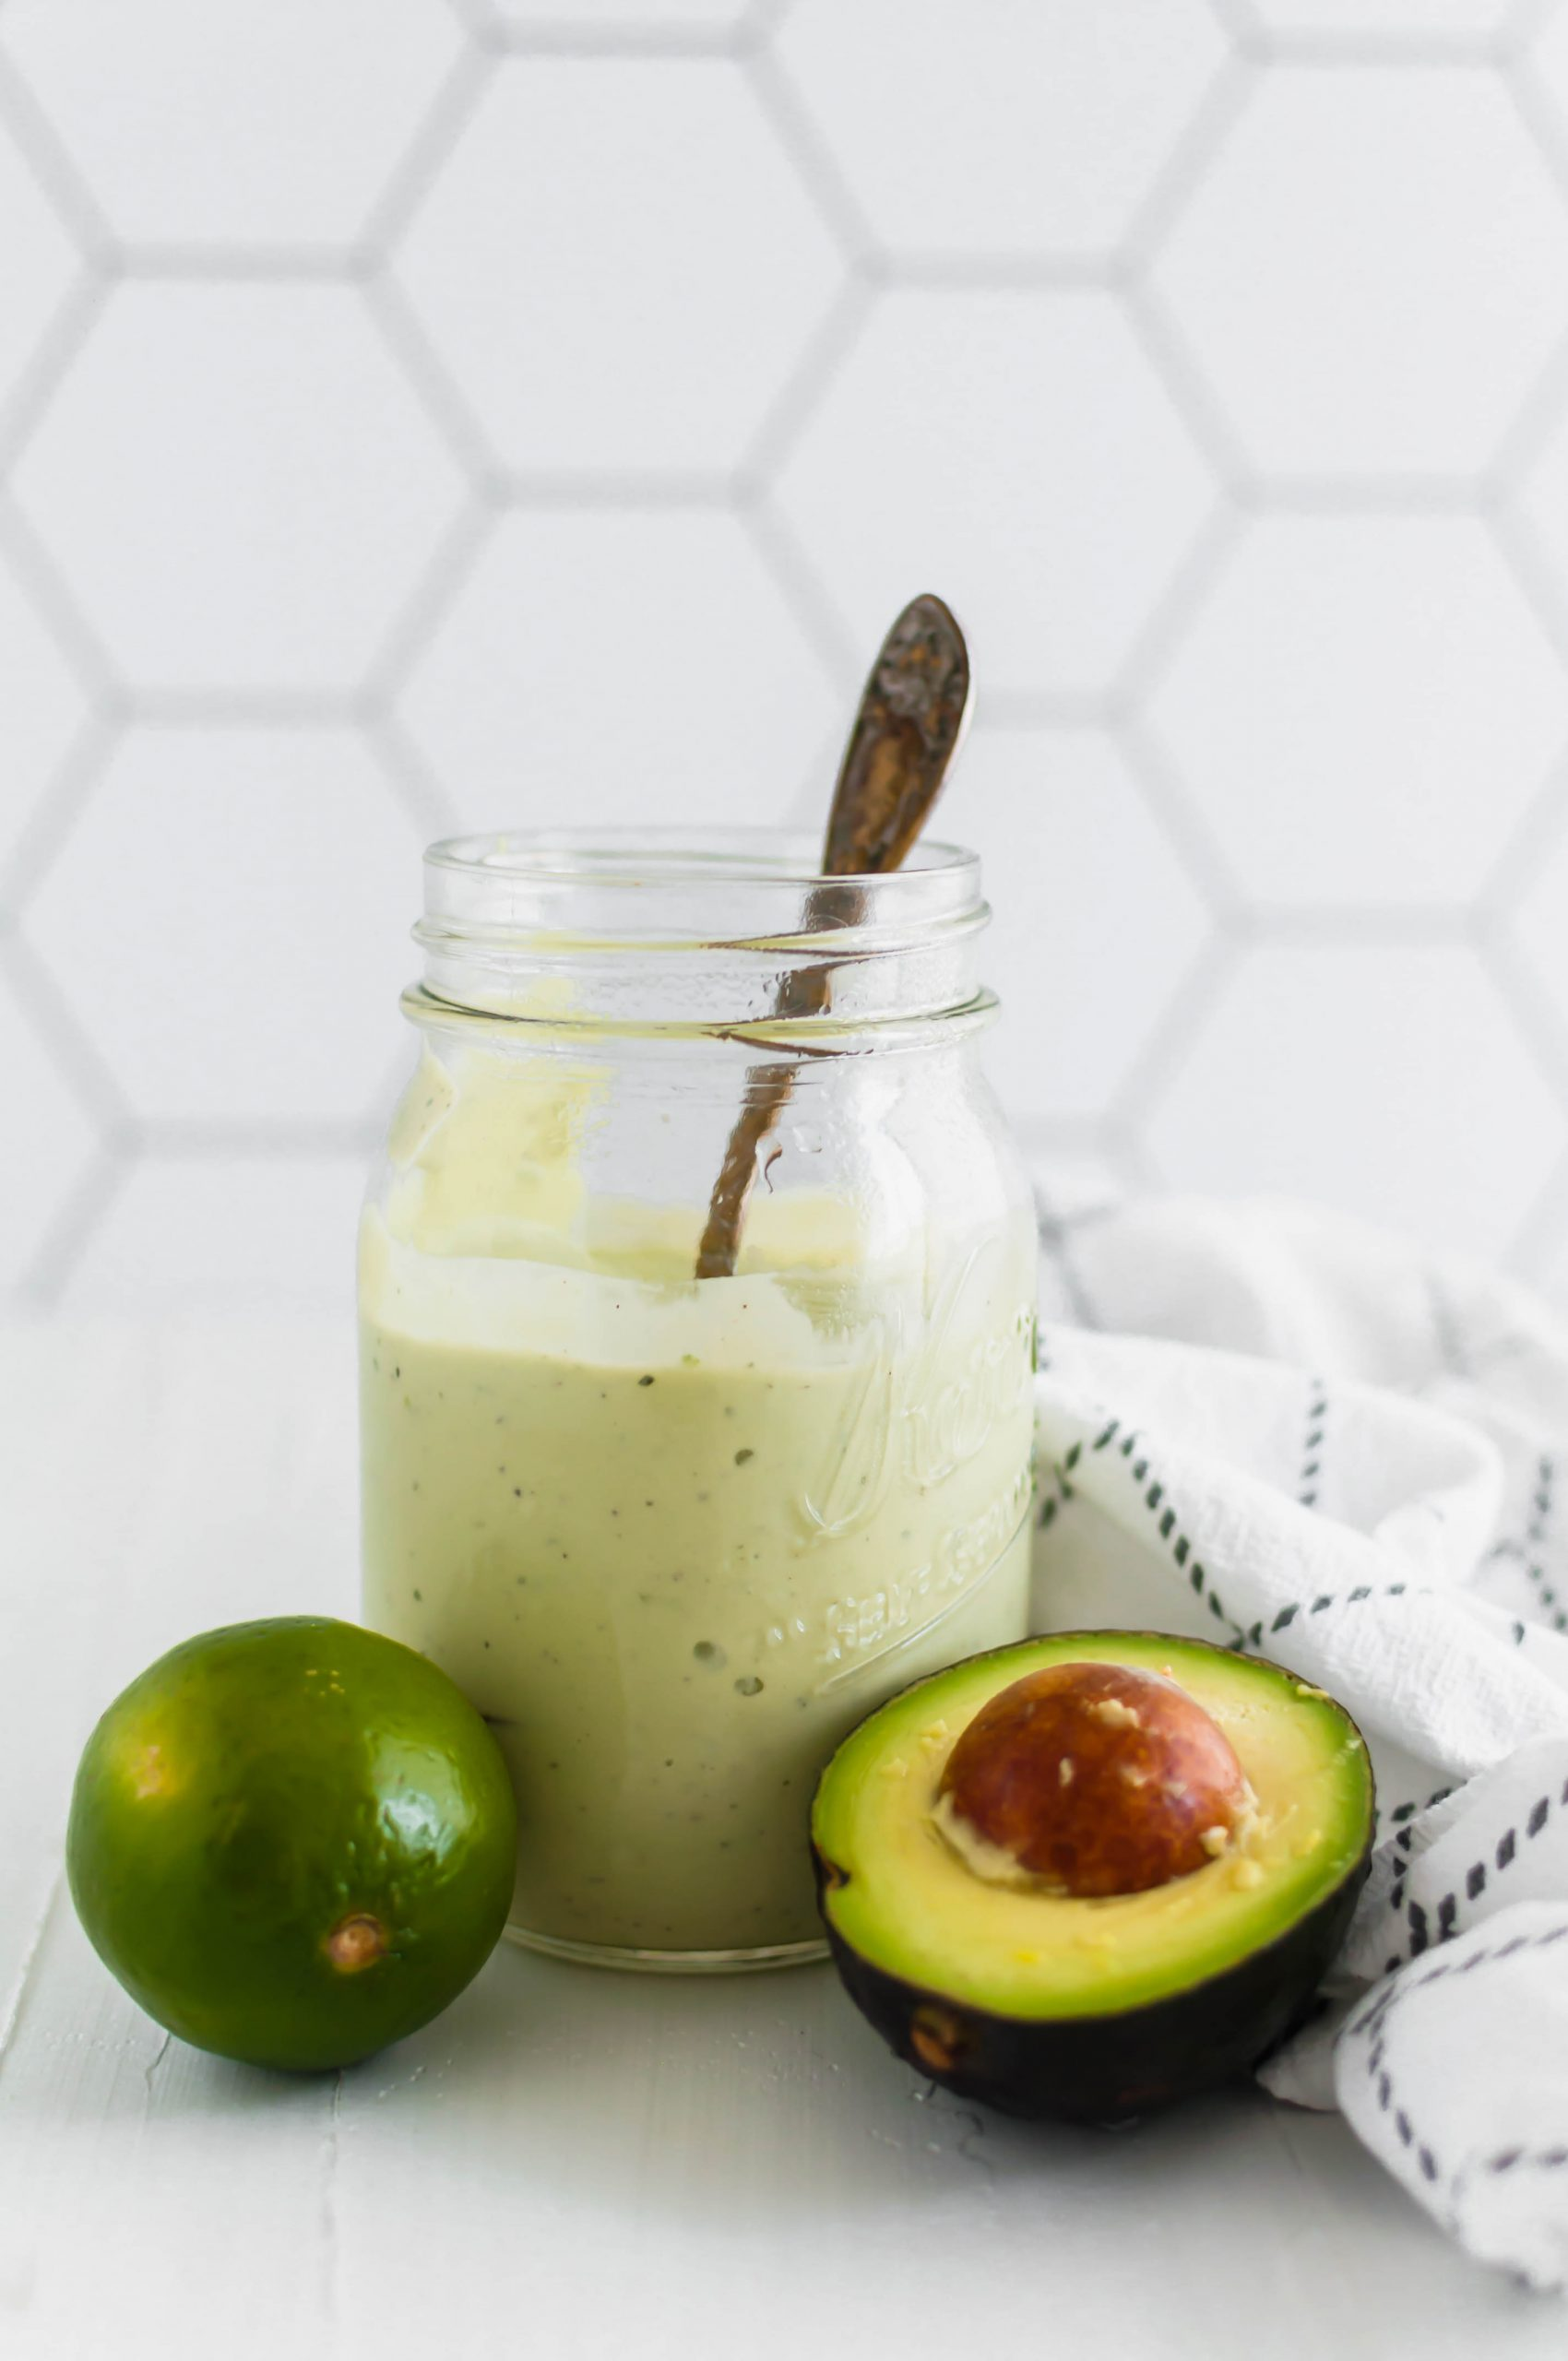 This Copycat Chick-fil-A Avocado Lime Ranch tastes just like the real deal. It's simple to make with a small handful of ingredients that are easy to pick up from the store. Bright, fresh and totally delicious on all your summer salads.